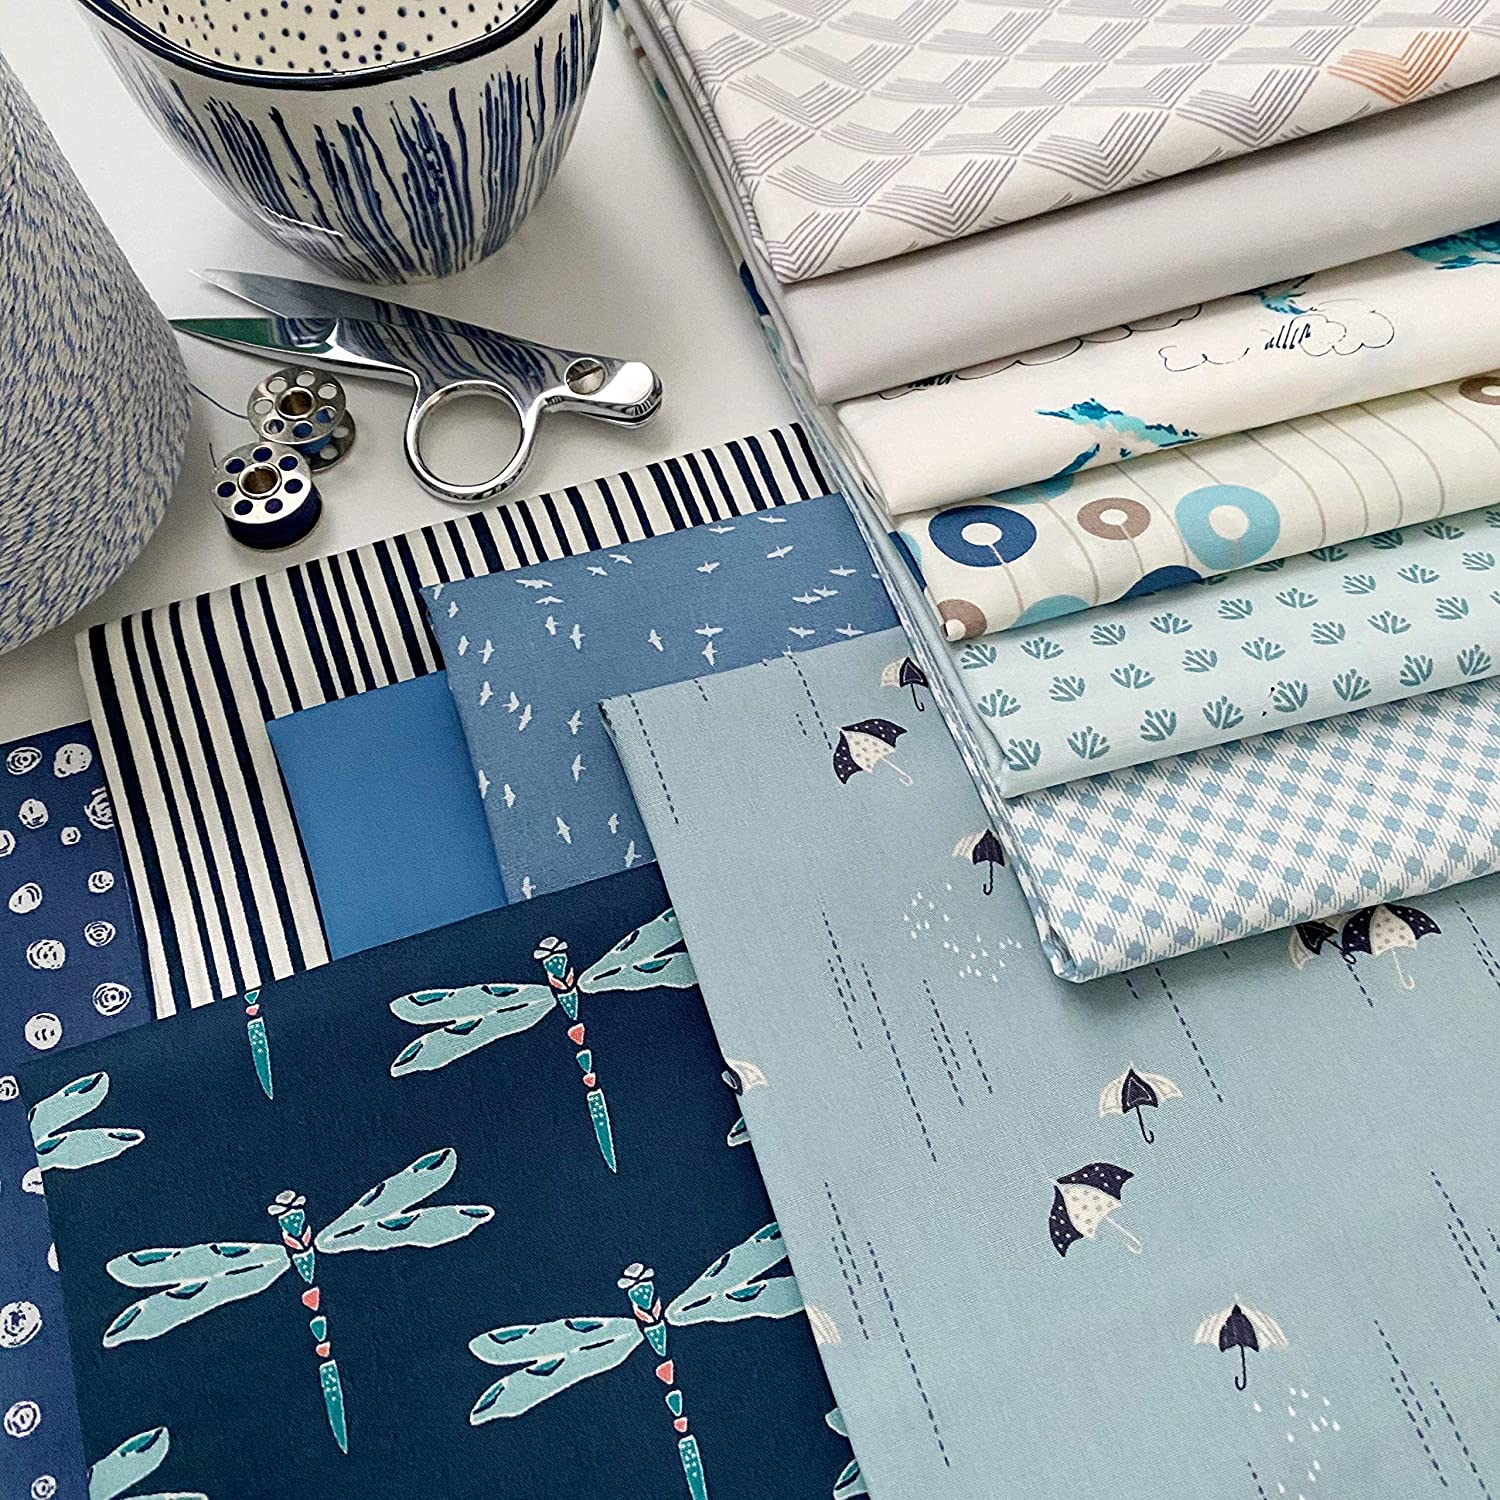 Blueberry Long Beach Mall Pie Curated Bundle Blue Quarters Gray Indefinitely Birds Fat with